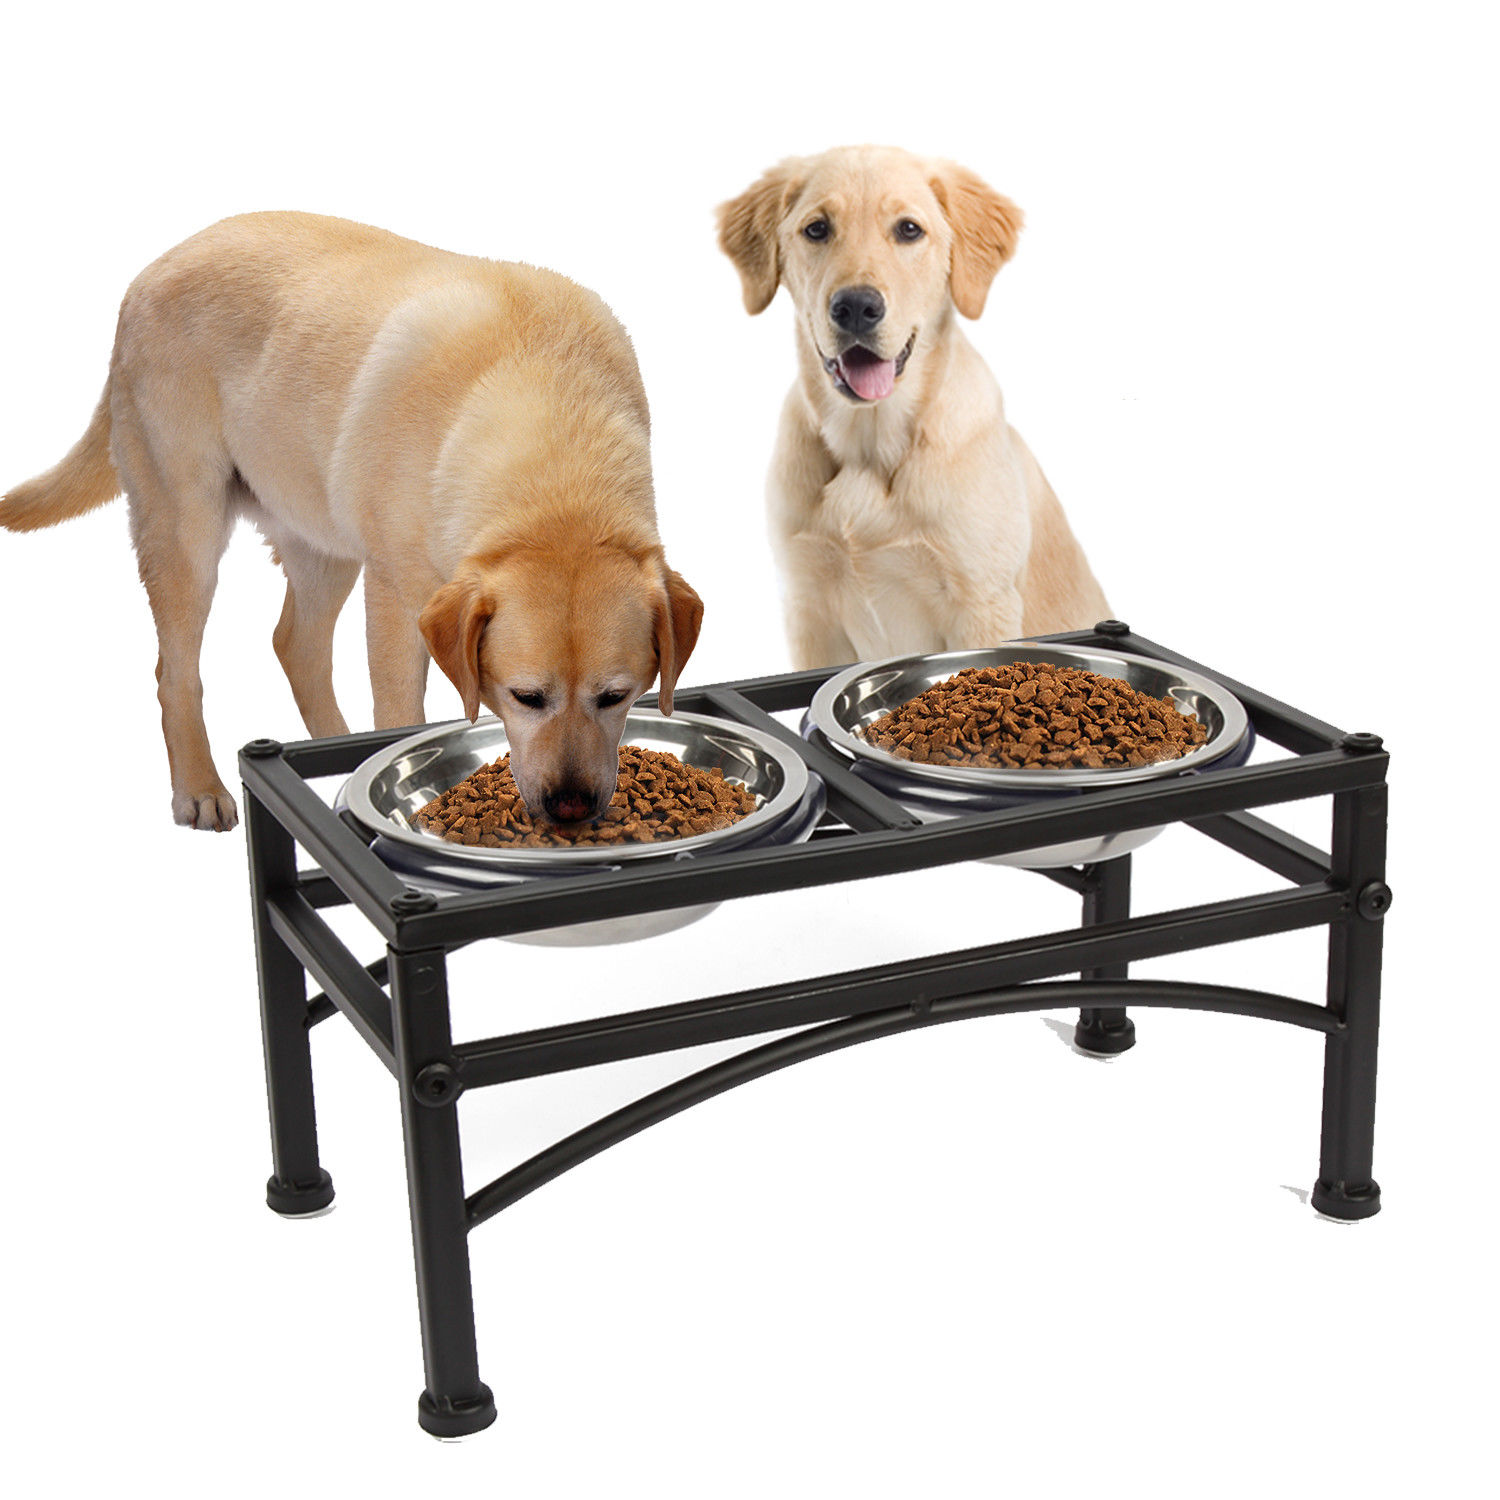 Raised Dog Bowls Elevated Cat Feeder With Two Stainless Steel Bowls-Perfect for Water Food or Treats